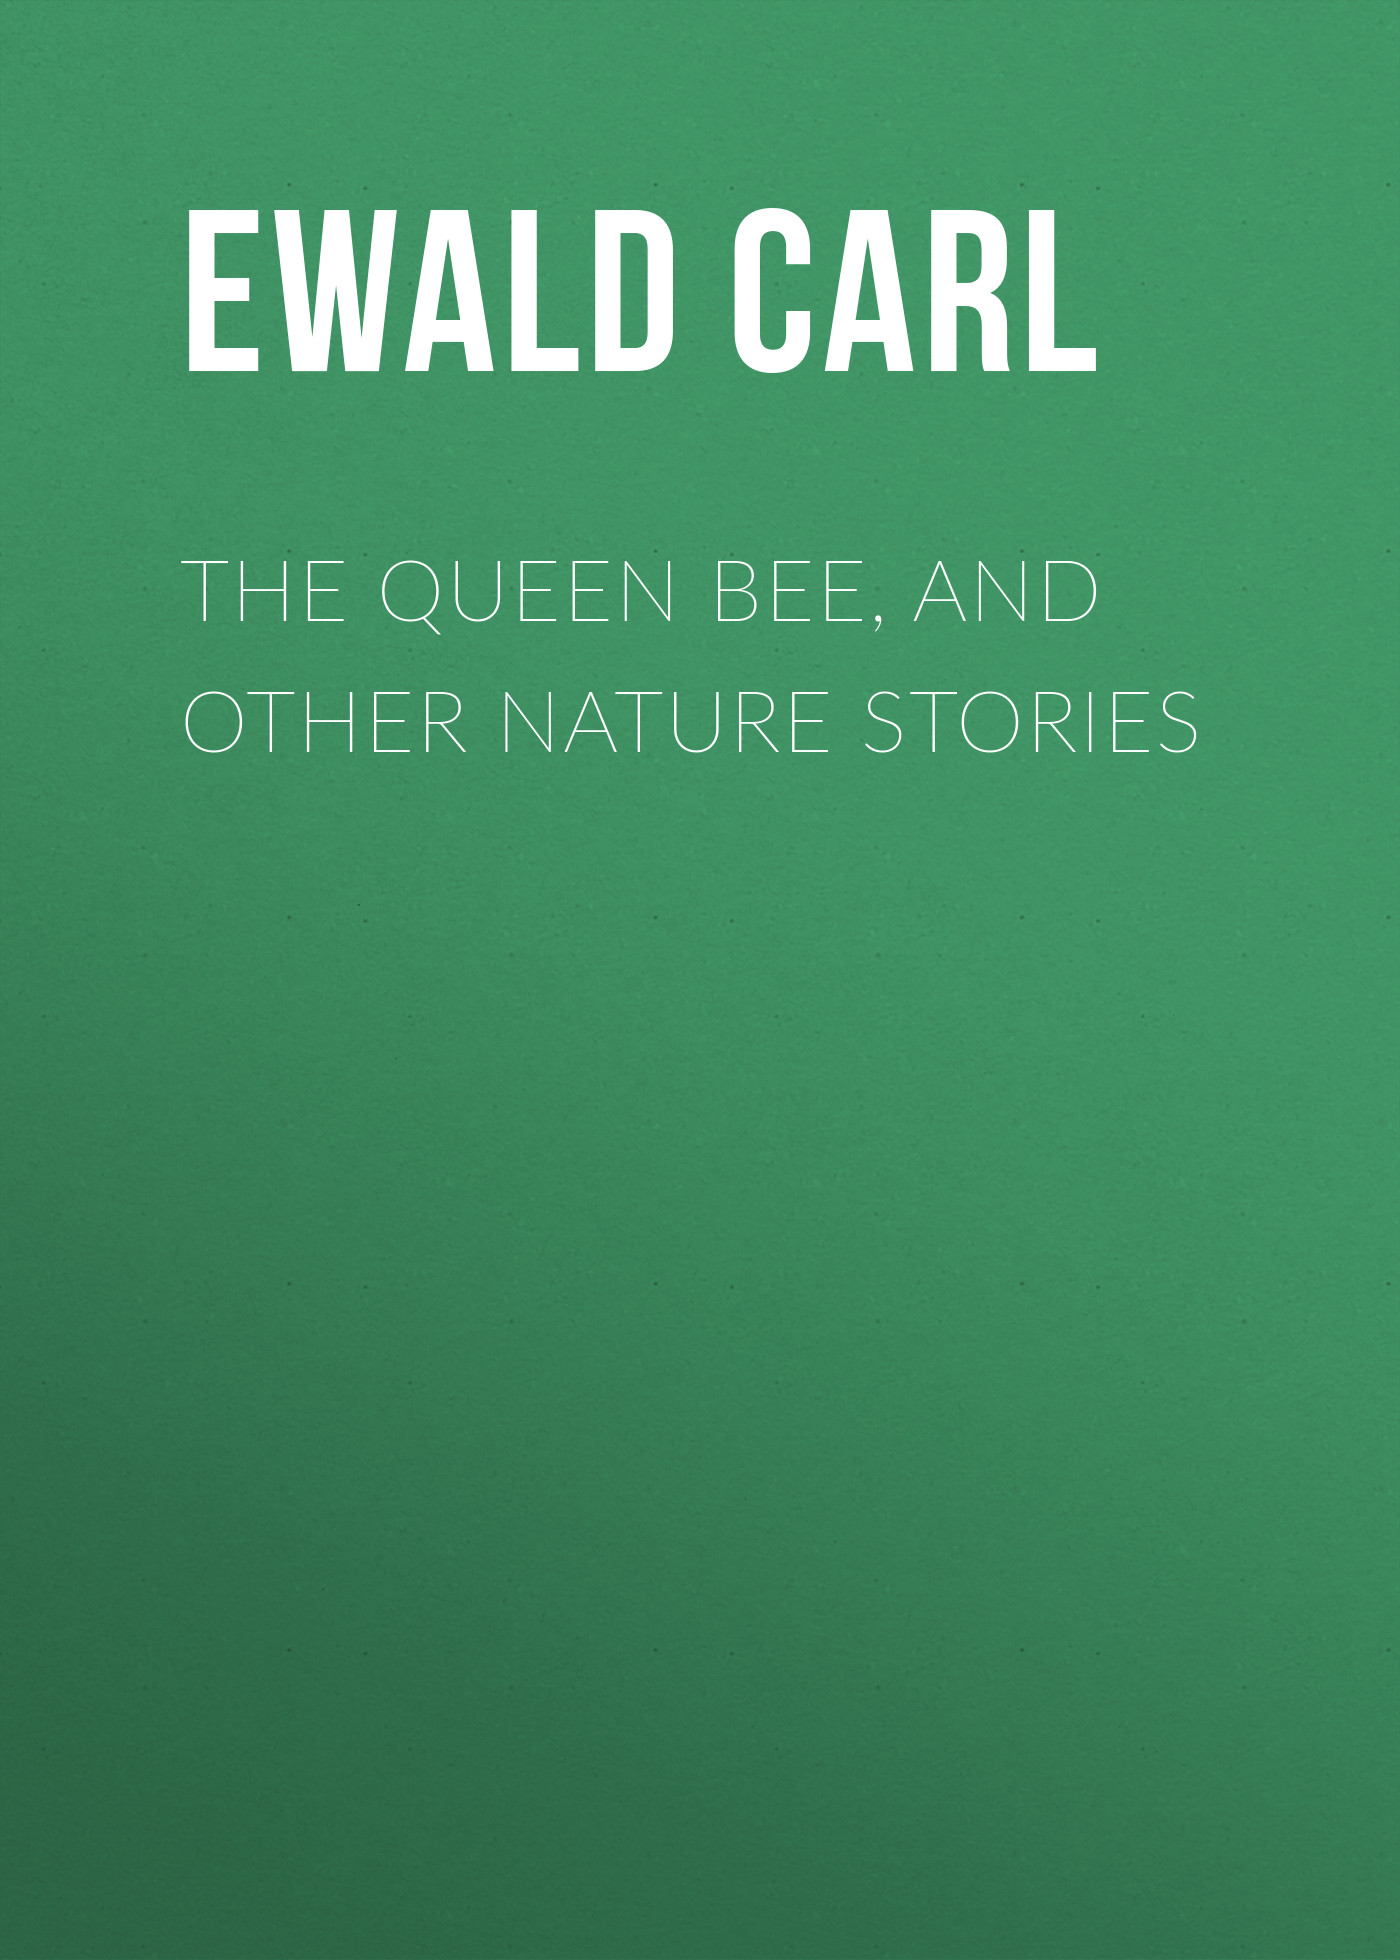 Ewald Carl The Queen Bee, and Other Nature Stories шампунь other queen sland 500ml